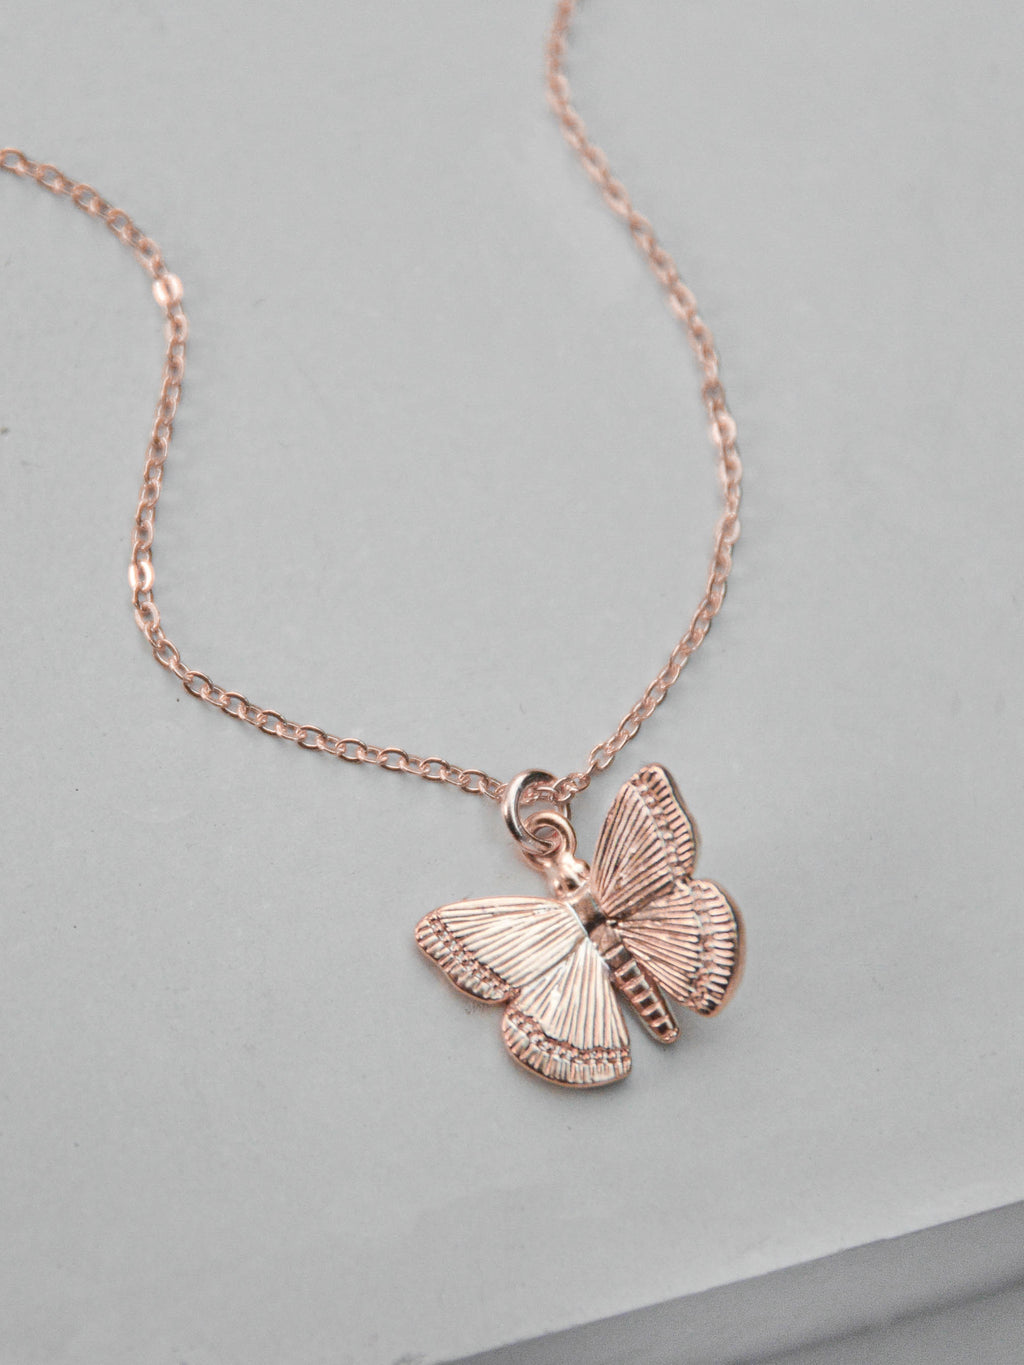 Rose Gold Butterfly  Charm in Gold filled Necklace by The Faint Hearted Jewelry